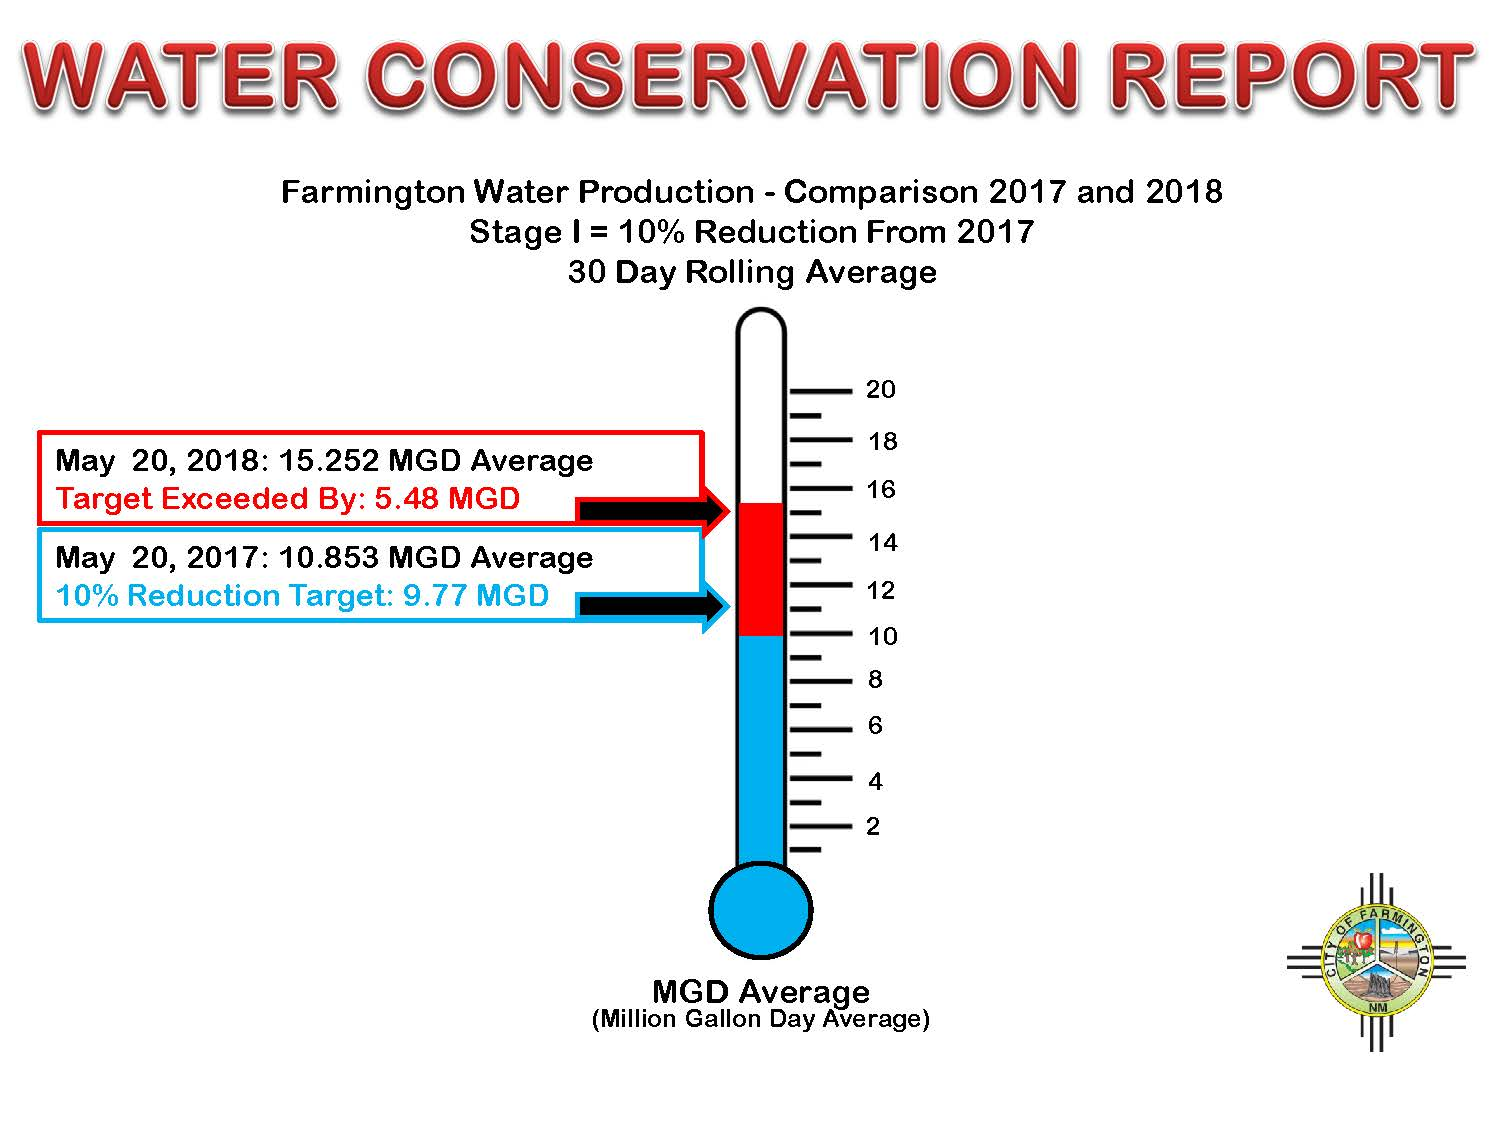 Conservation Report - 2017-2018 Comparison